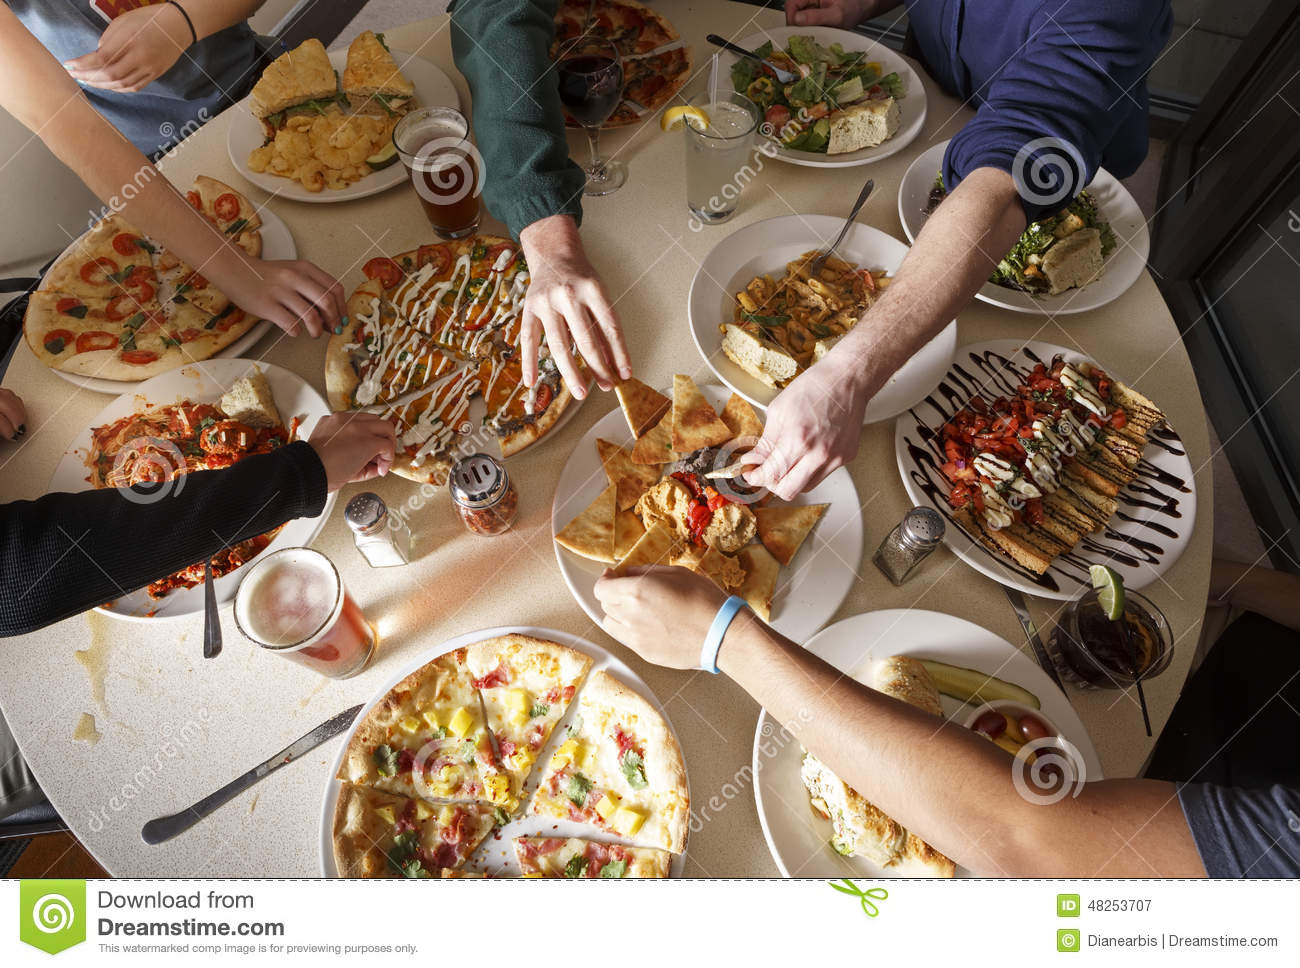 People Eating Food Stock Image Image Of Pizza Drinks 48253707